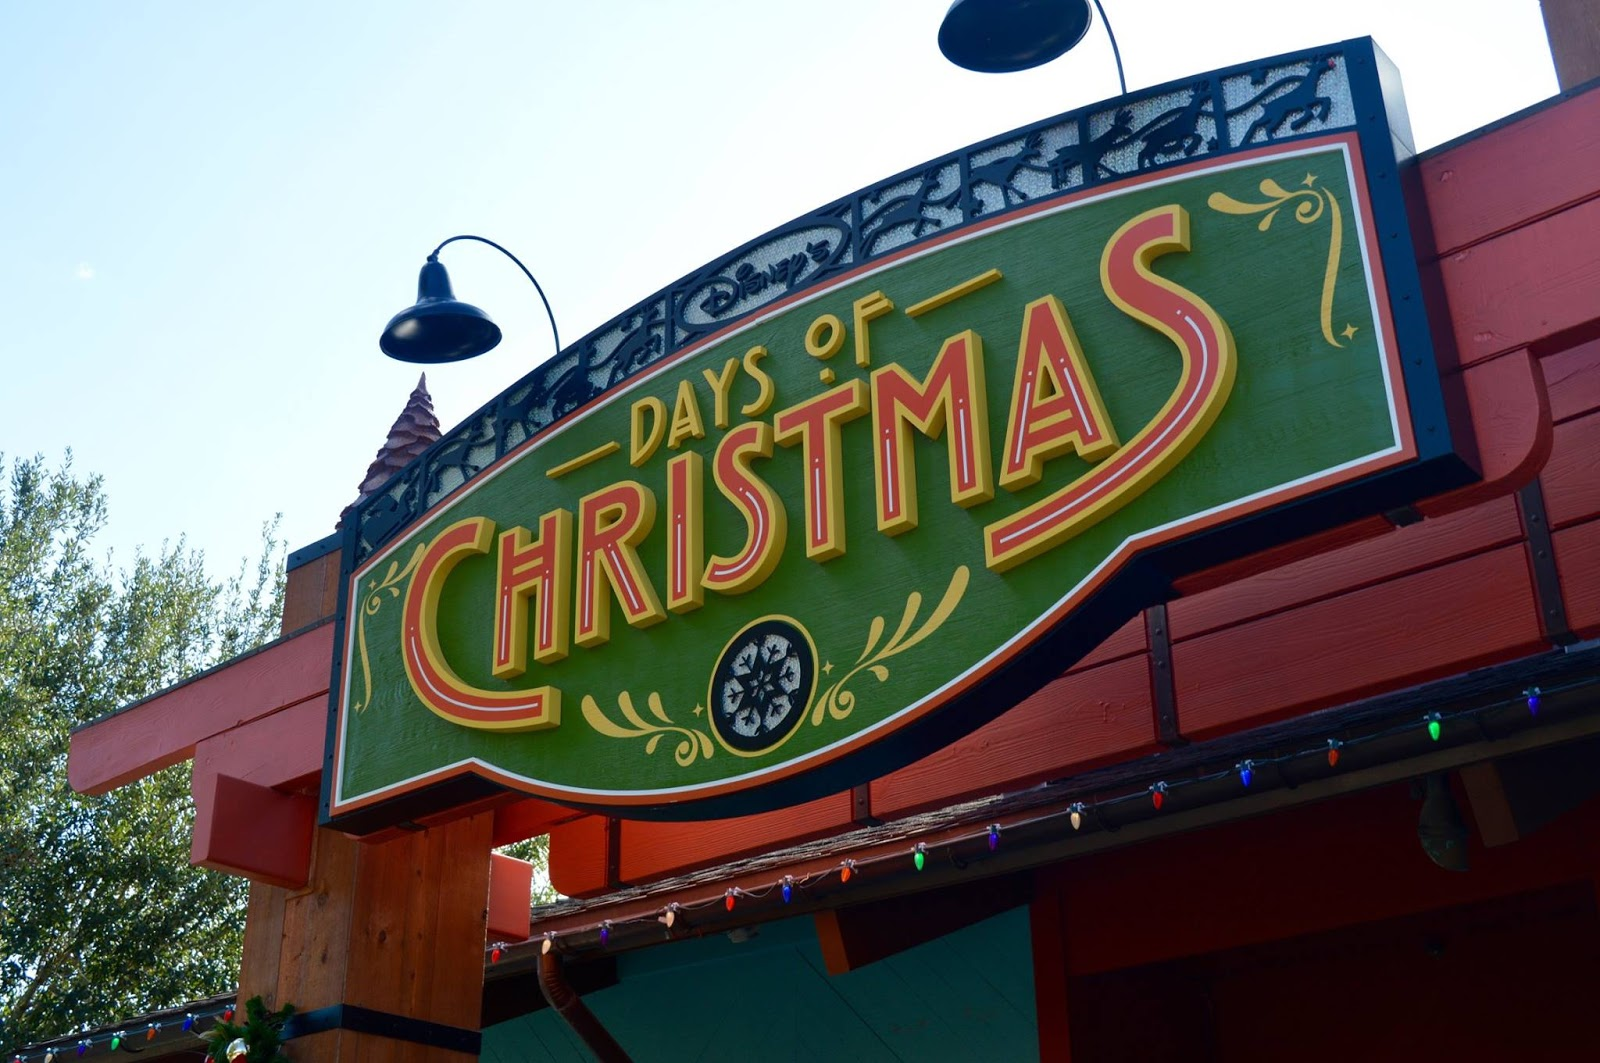 11 Things to do with Kids at Disney Springs Orlando, Florida  - Disney Christmas Shop